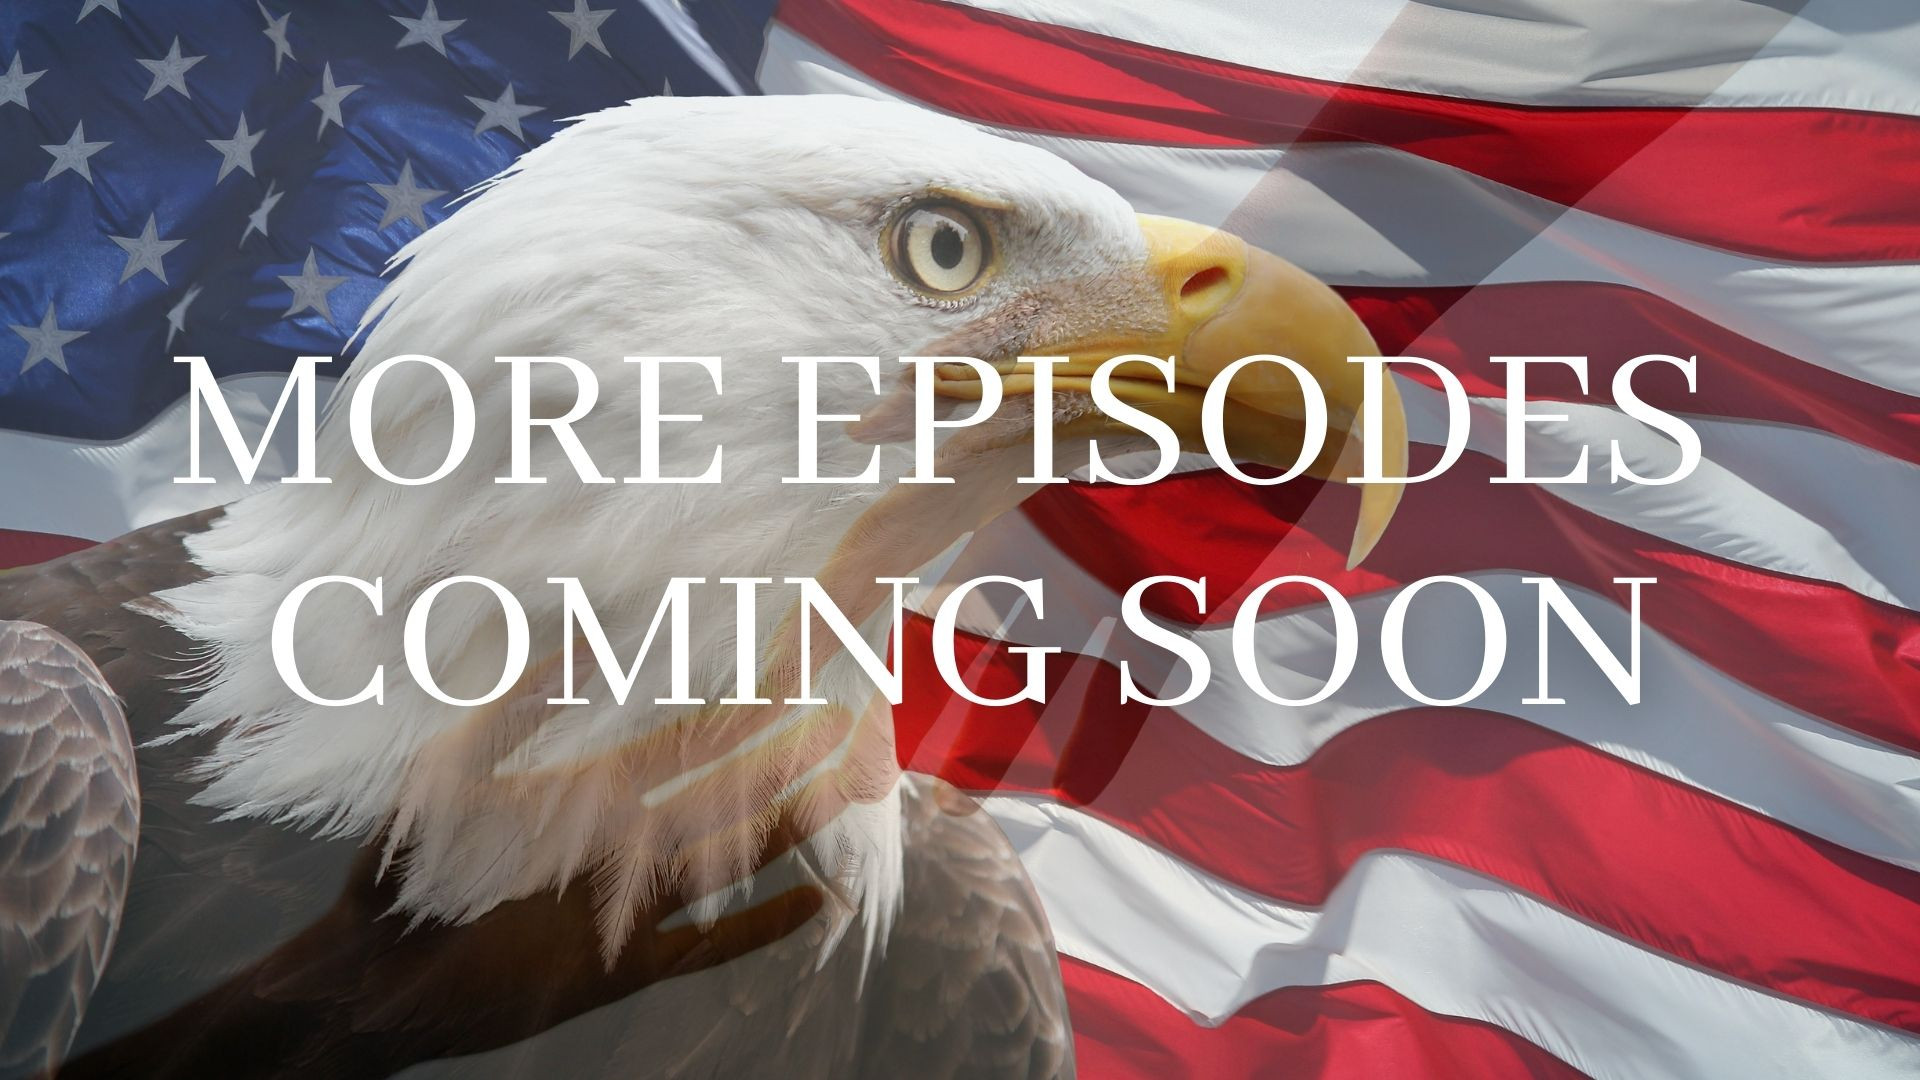 MORE EPISODES COMING SOON 3.jpg